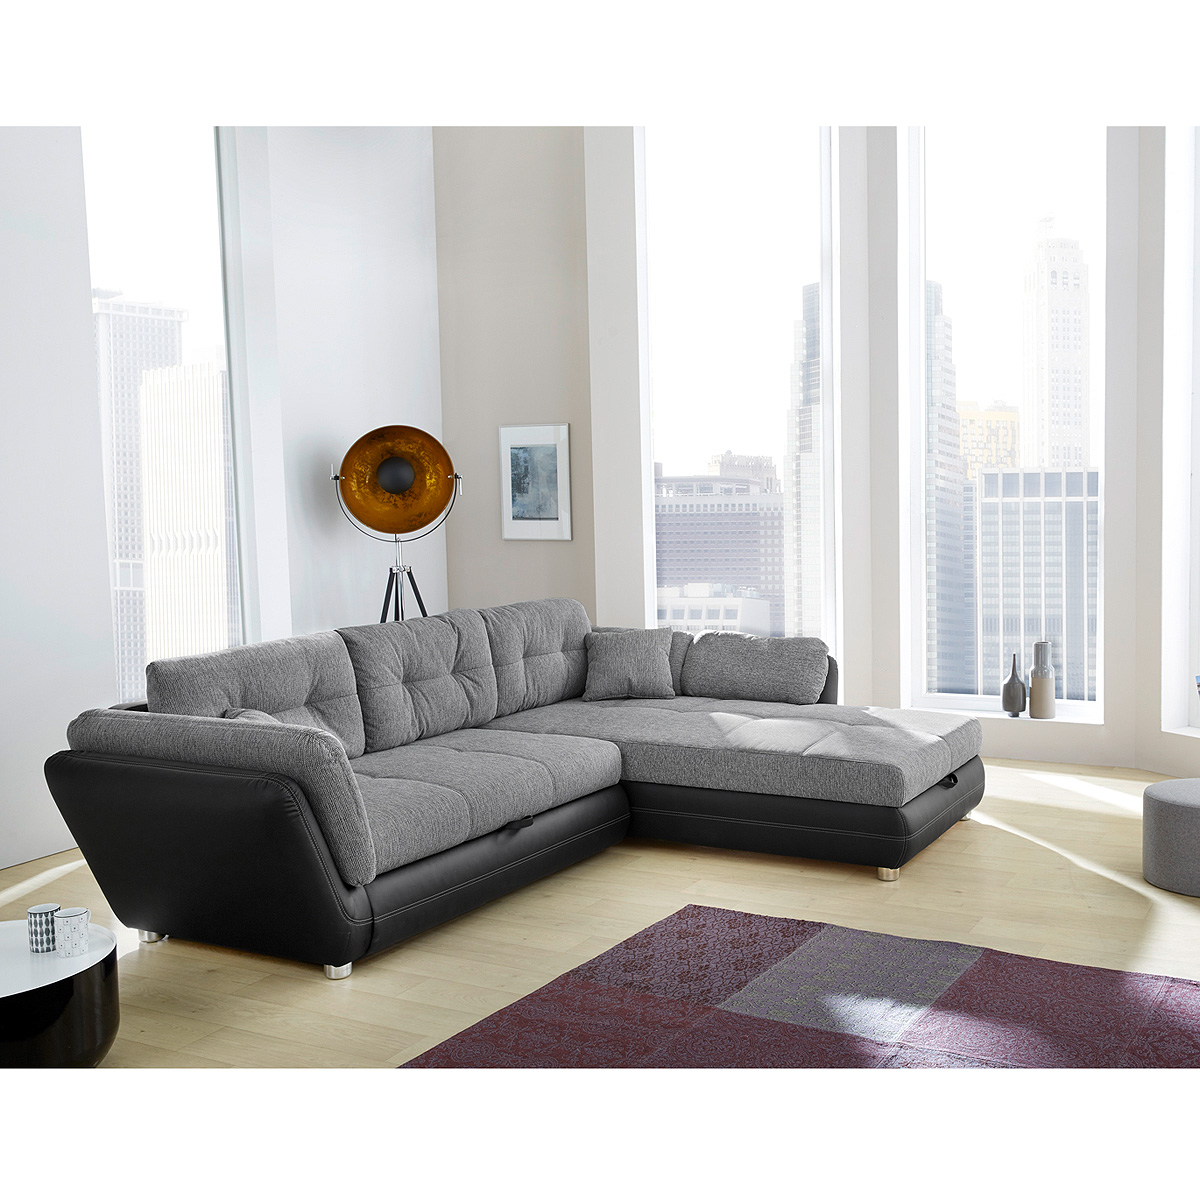 wohnlandschaft java sofa ecksofa in schwarz und grau mit bettfunktion ebay. Black Bedroom Furniture Sets. Home Design Ideas